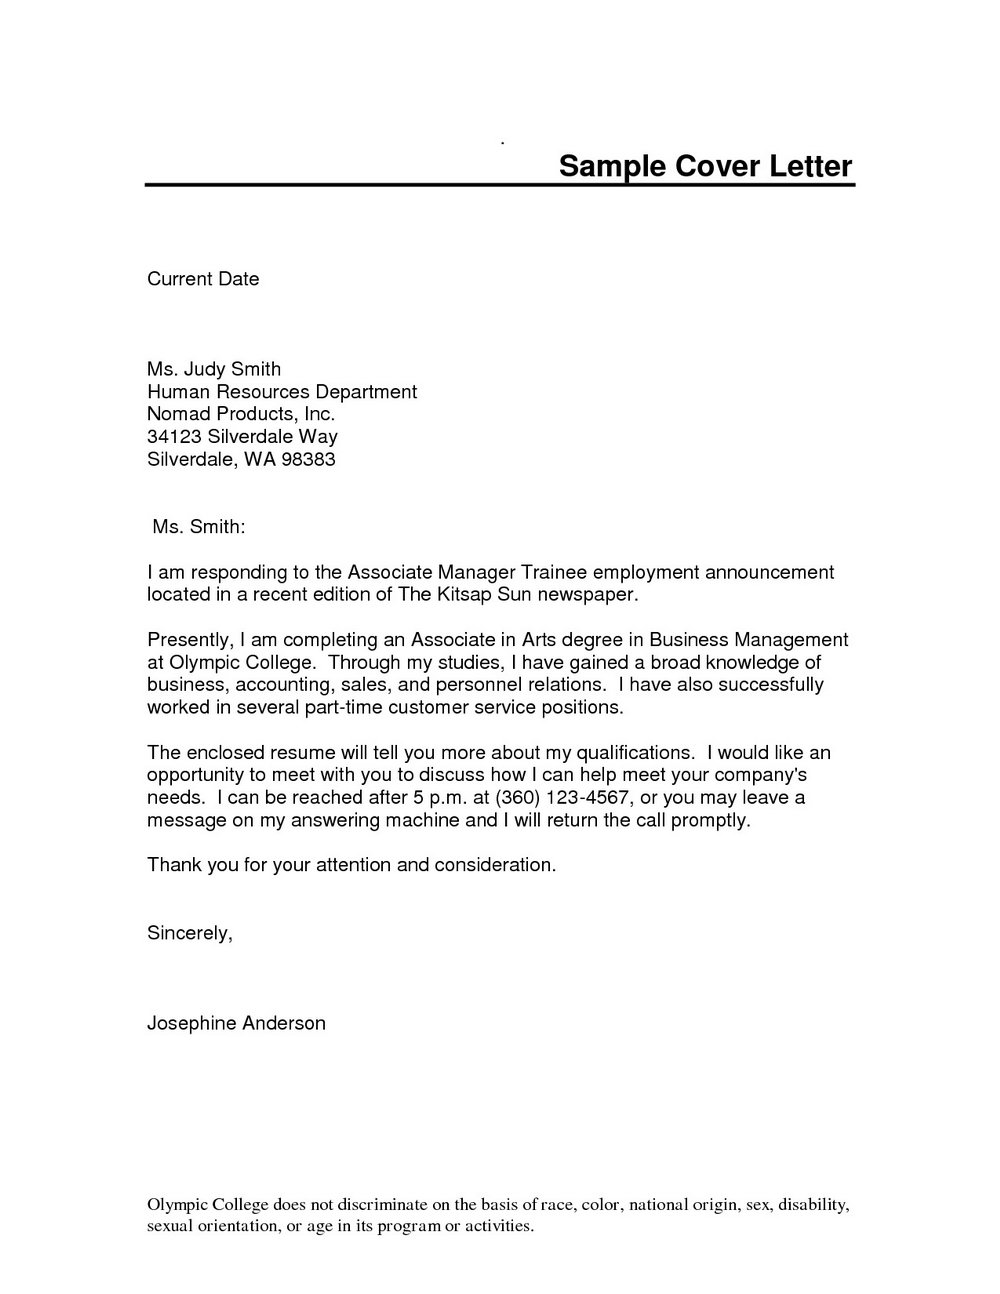 Free Cover Letter Templates Word 2010